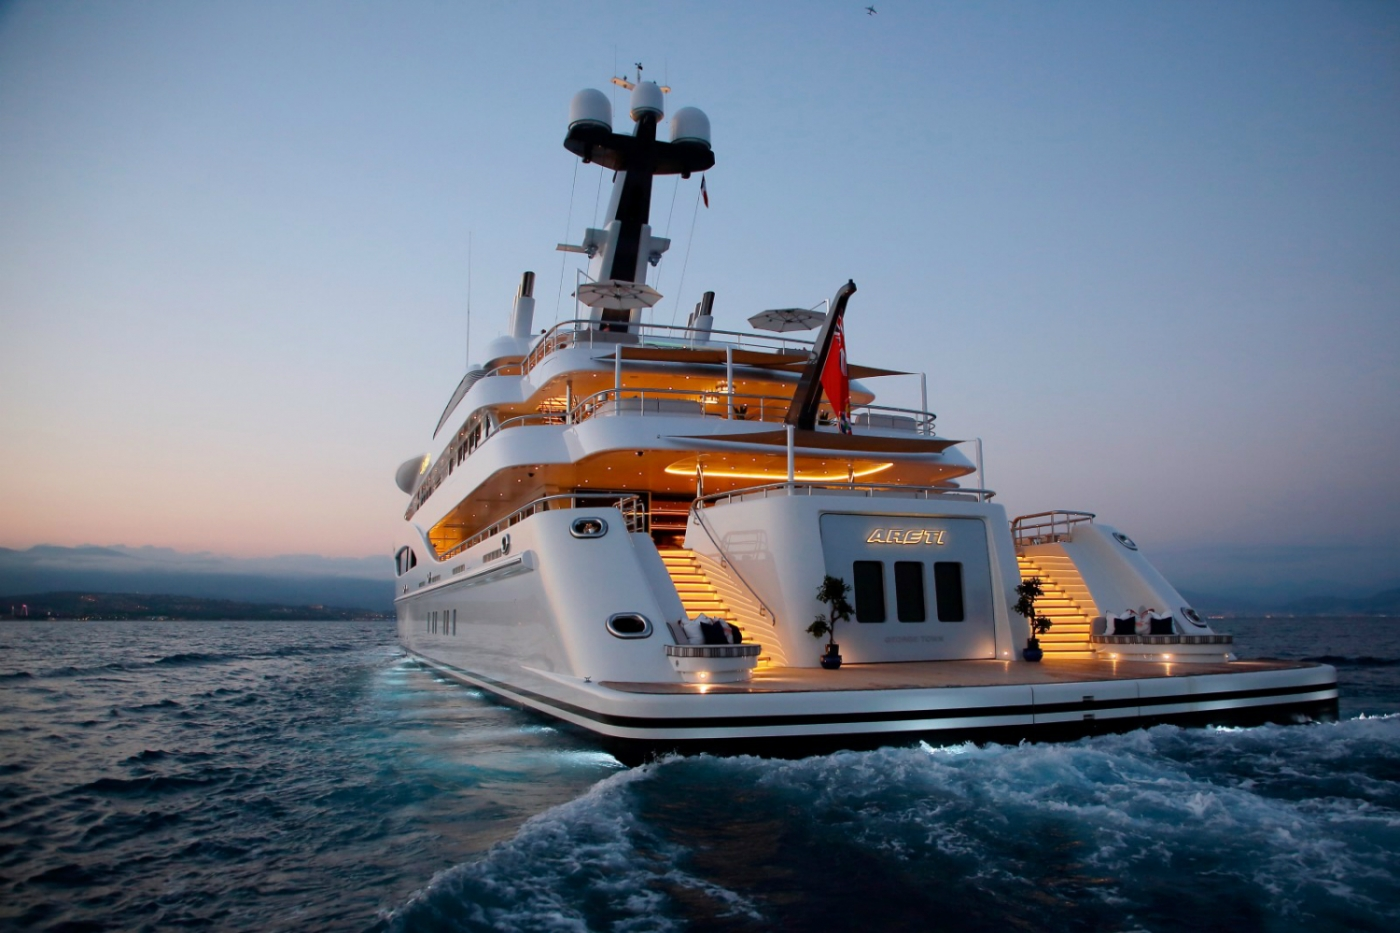 fort lauderdale international boat show What To Do In Miami During Fort Lauderdale International Boat Show'19 featured 9 1400x933